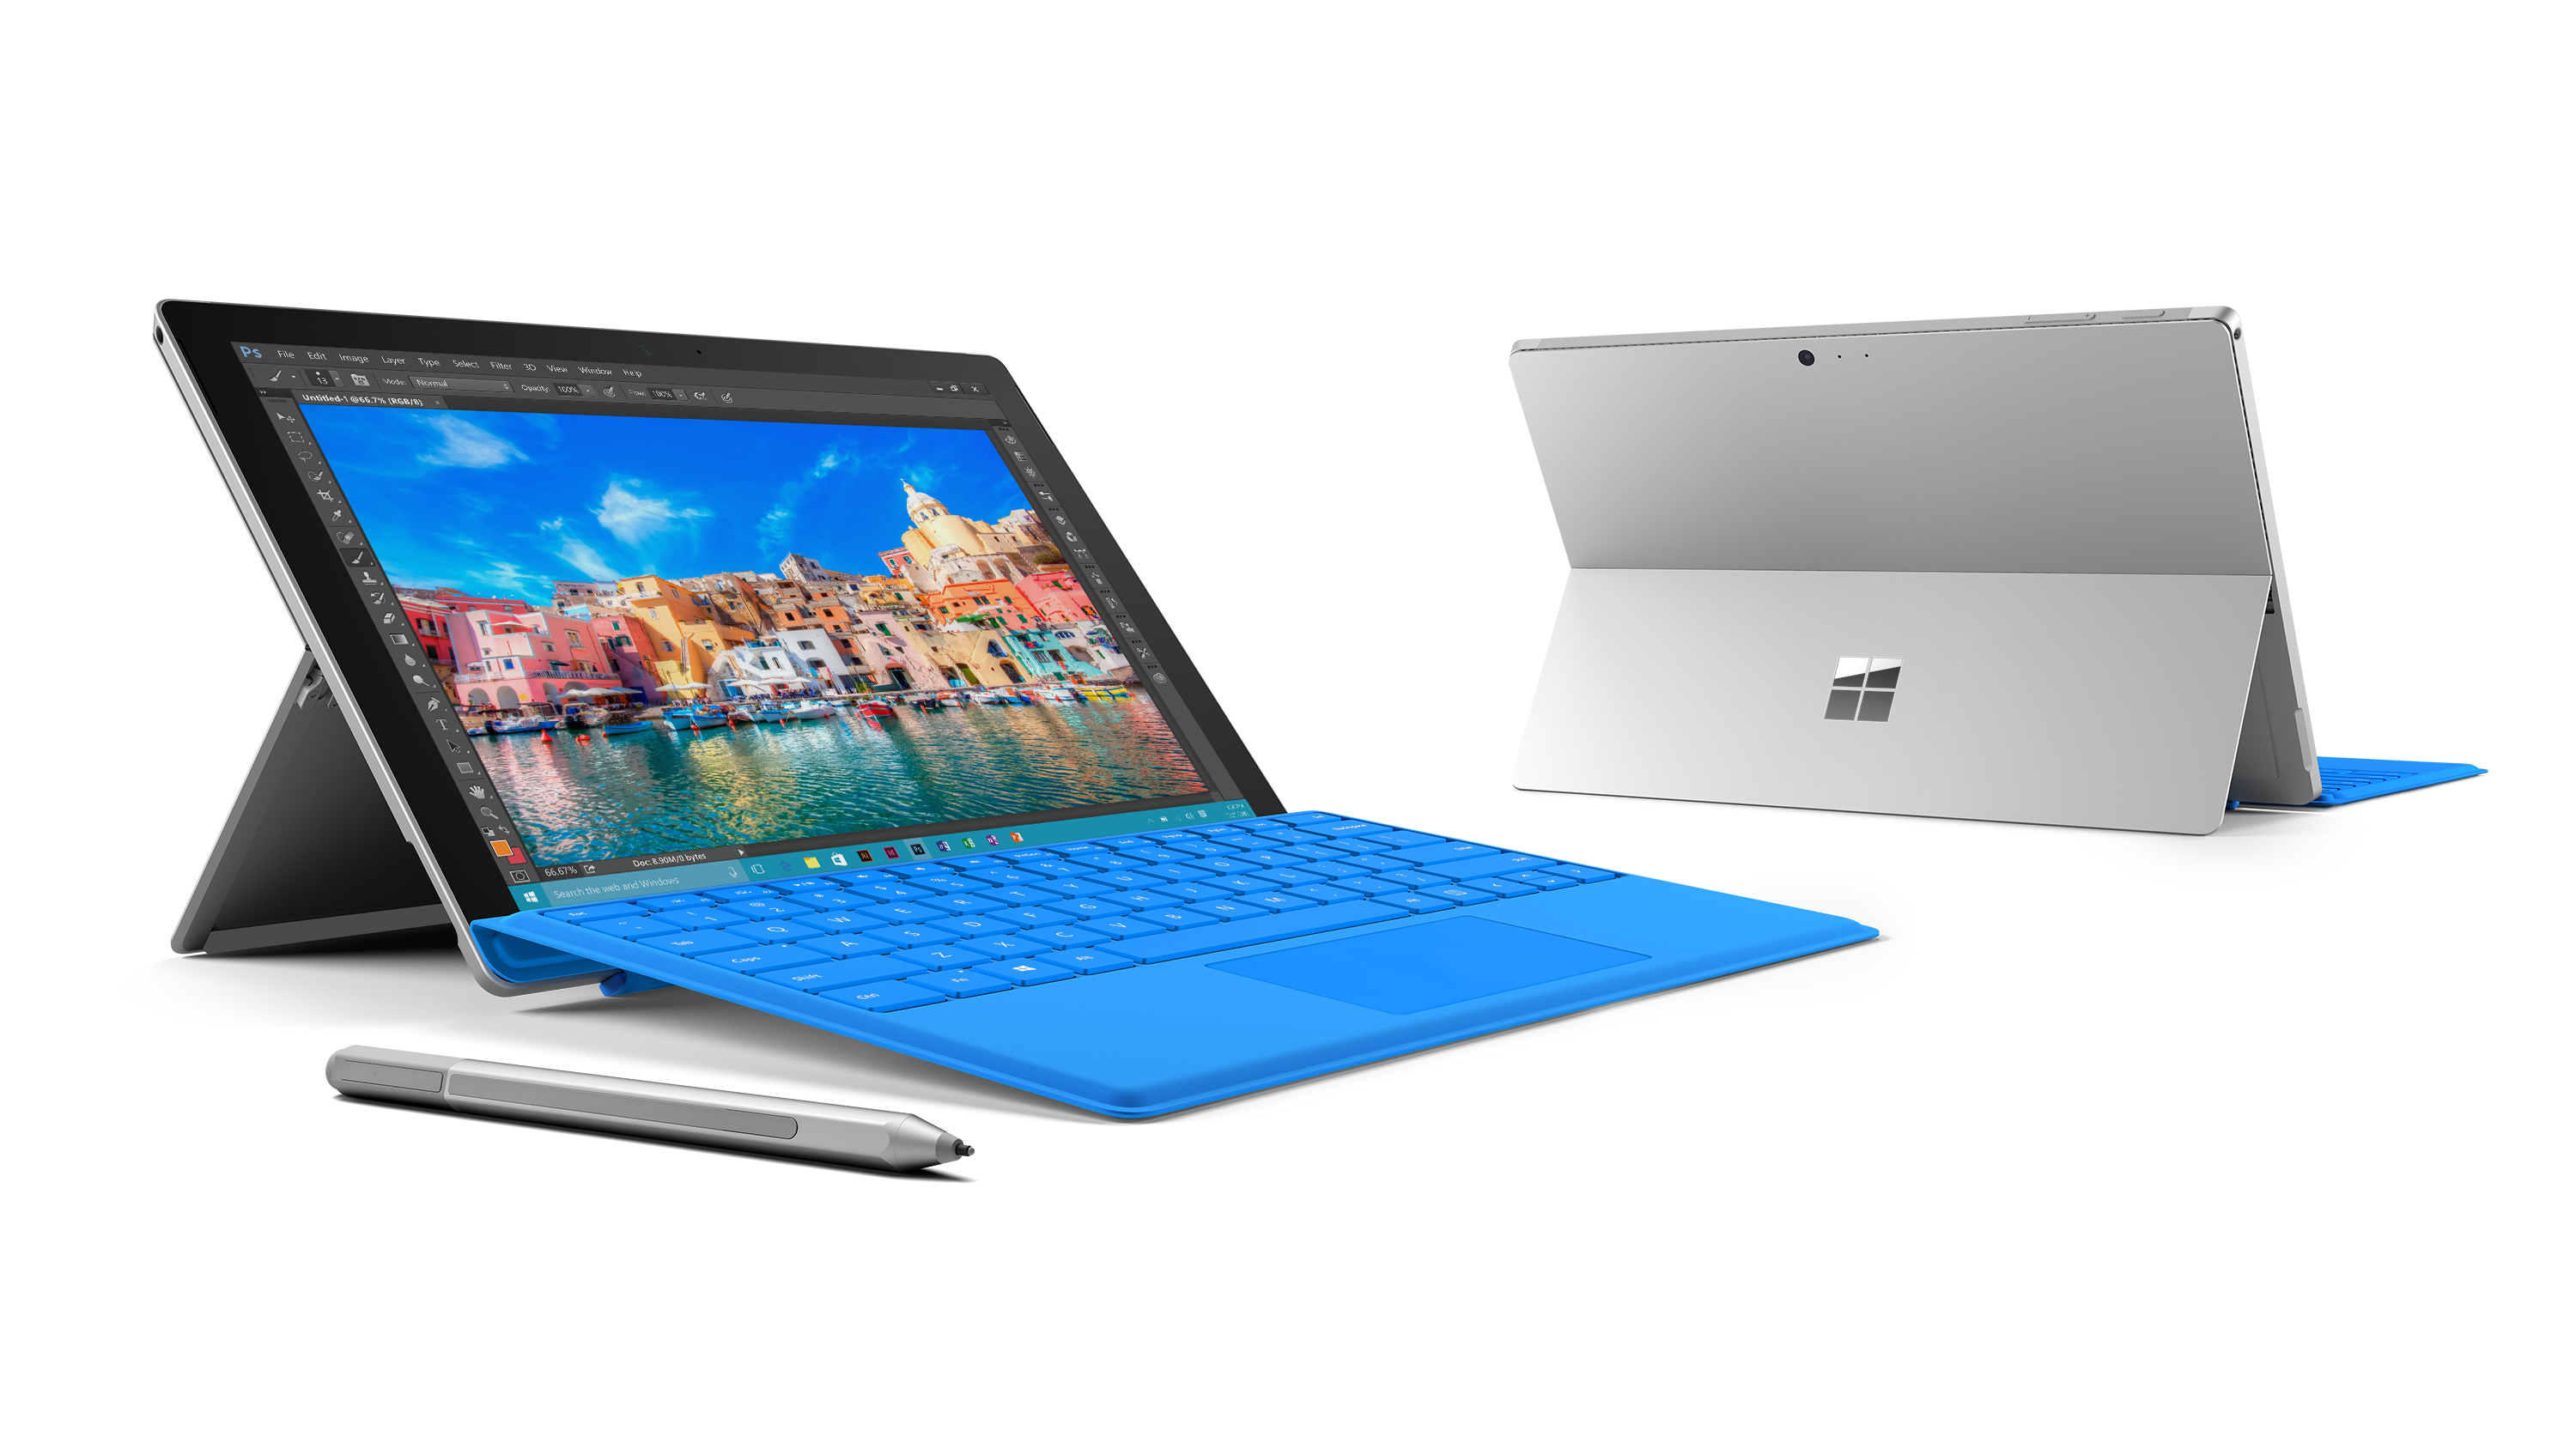 10 Tips for Mastering the Microsoft Surface Pro 4